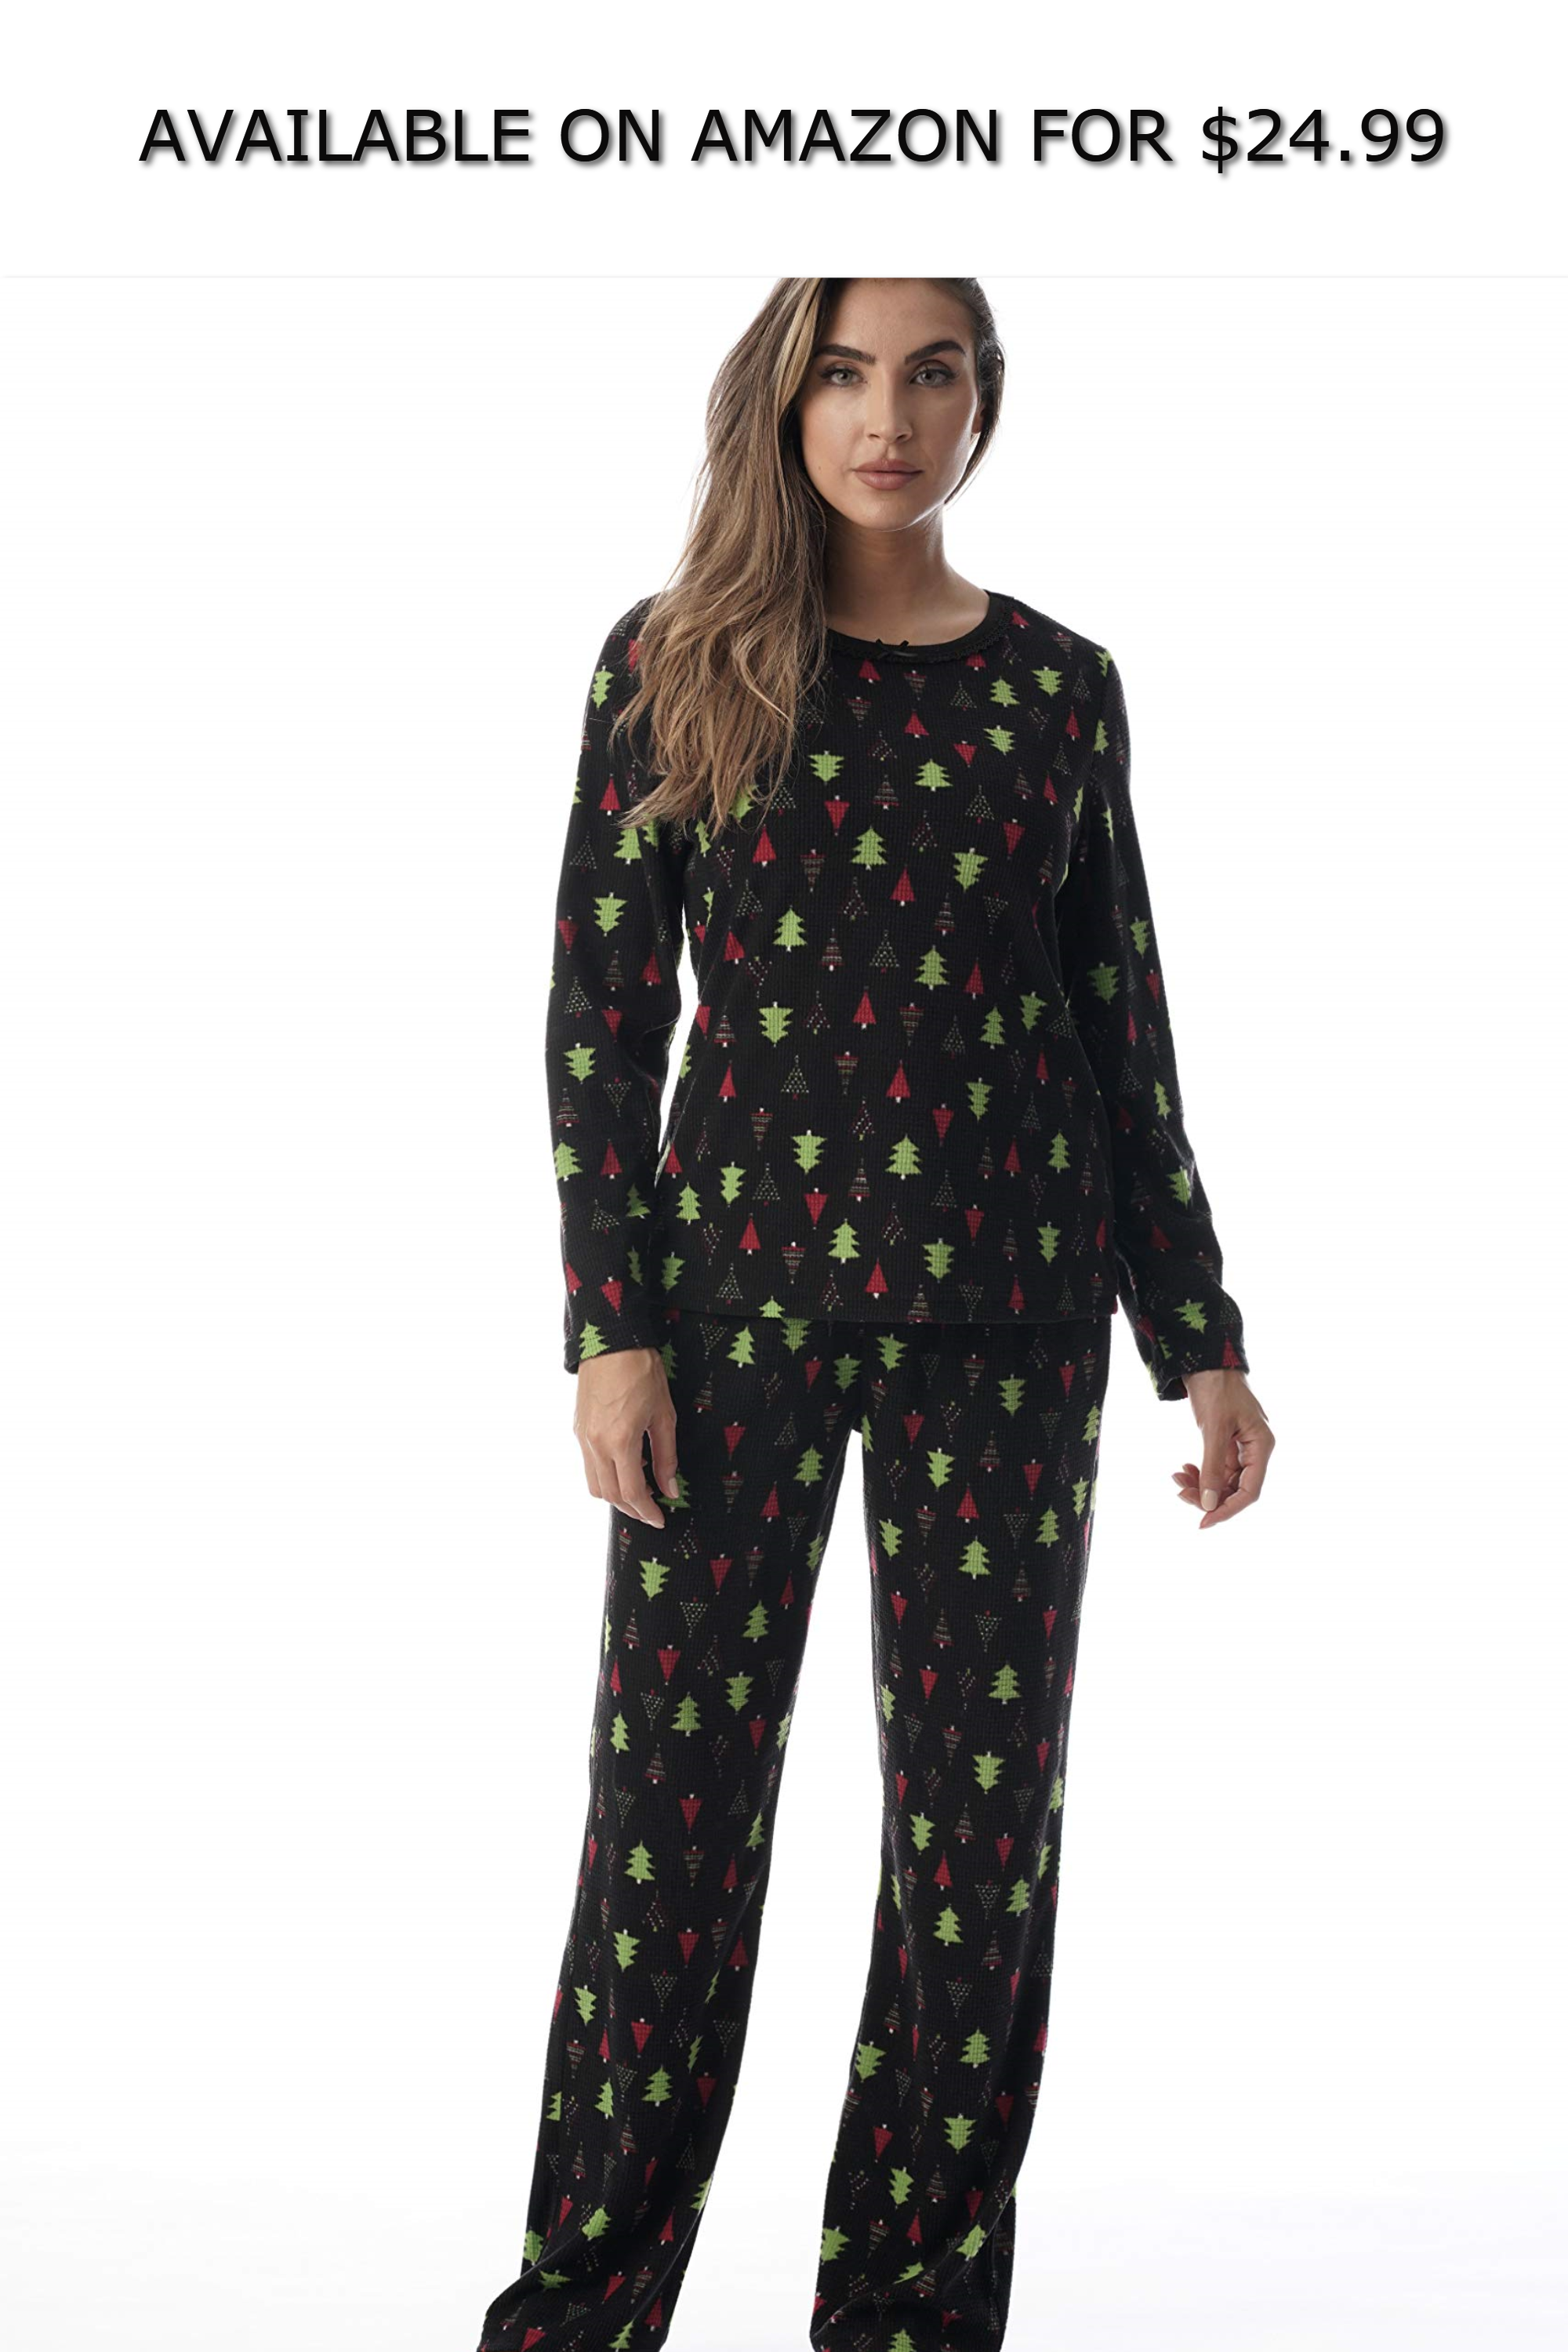 Just Love Thermal Fleece Pajamas for Women AVAILABLE ON